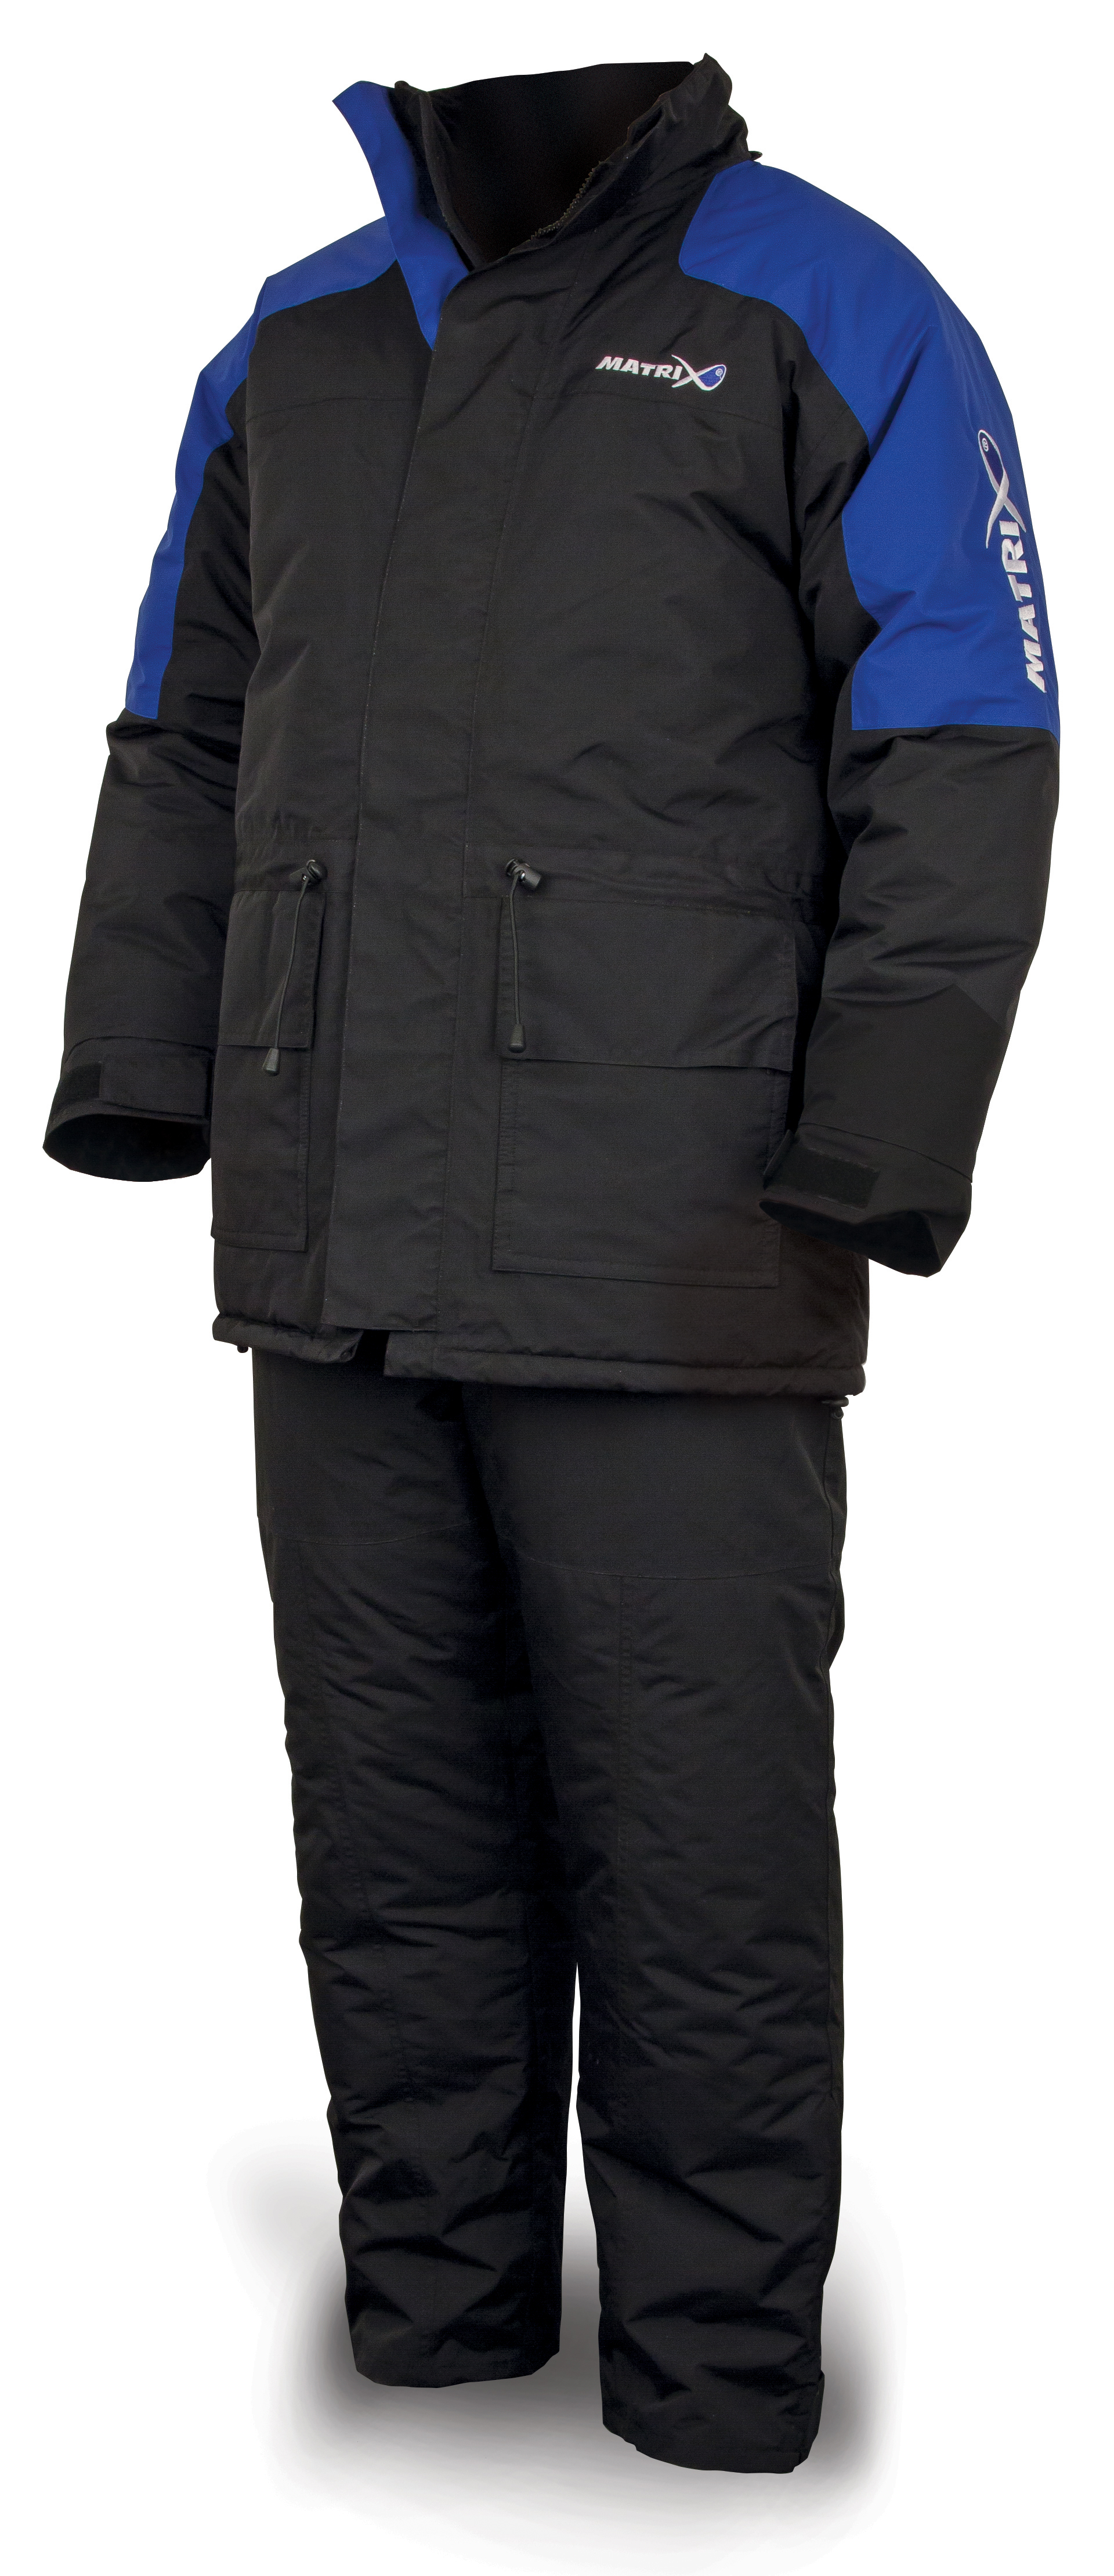 MATRIX THERMAL SUIT